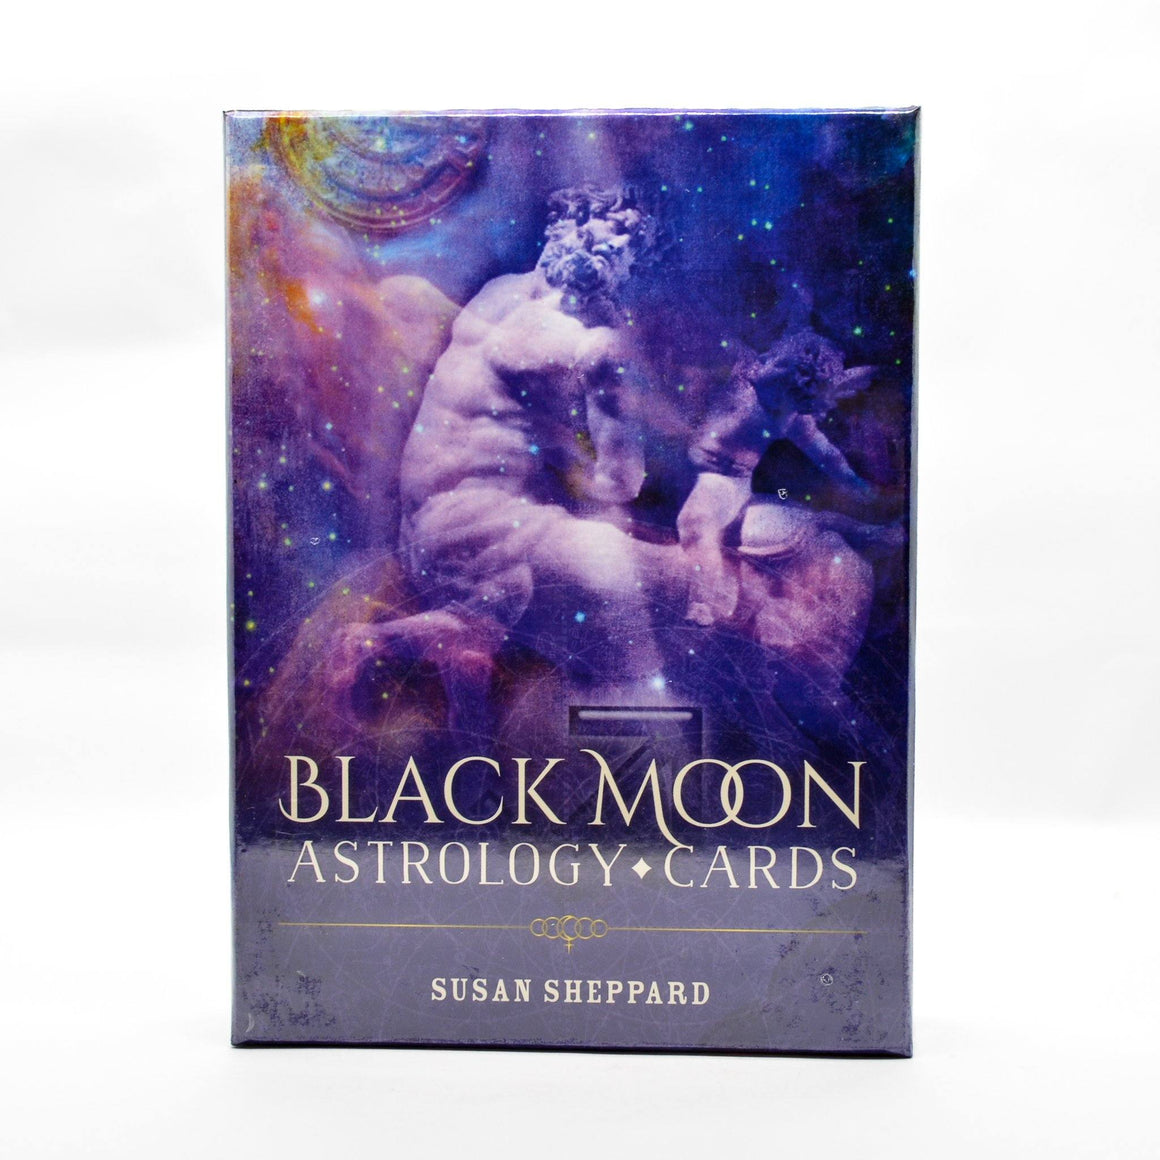 Black Moon Astrology Cards